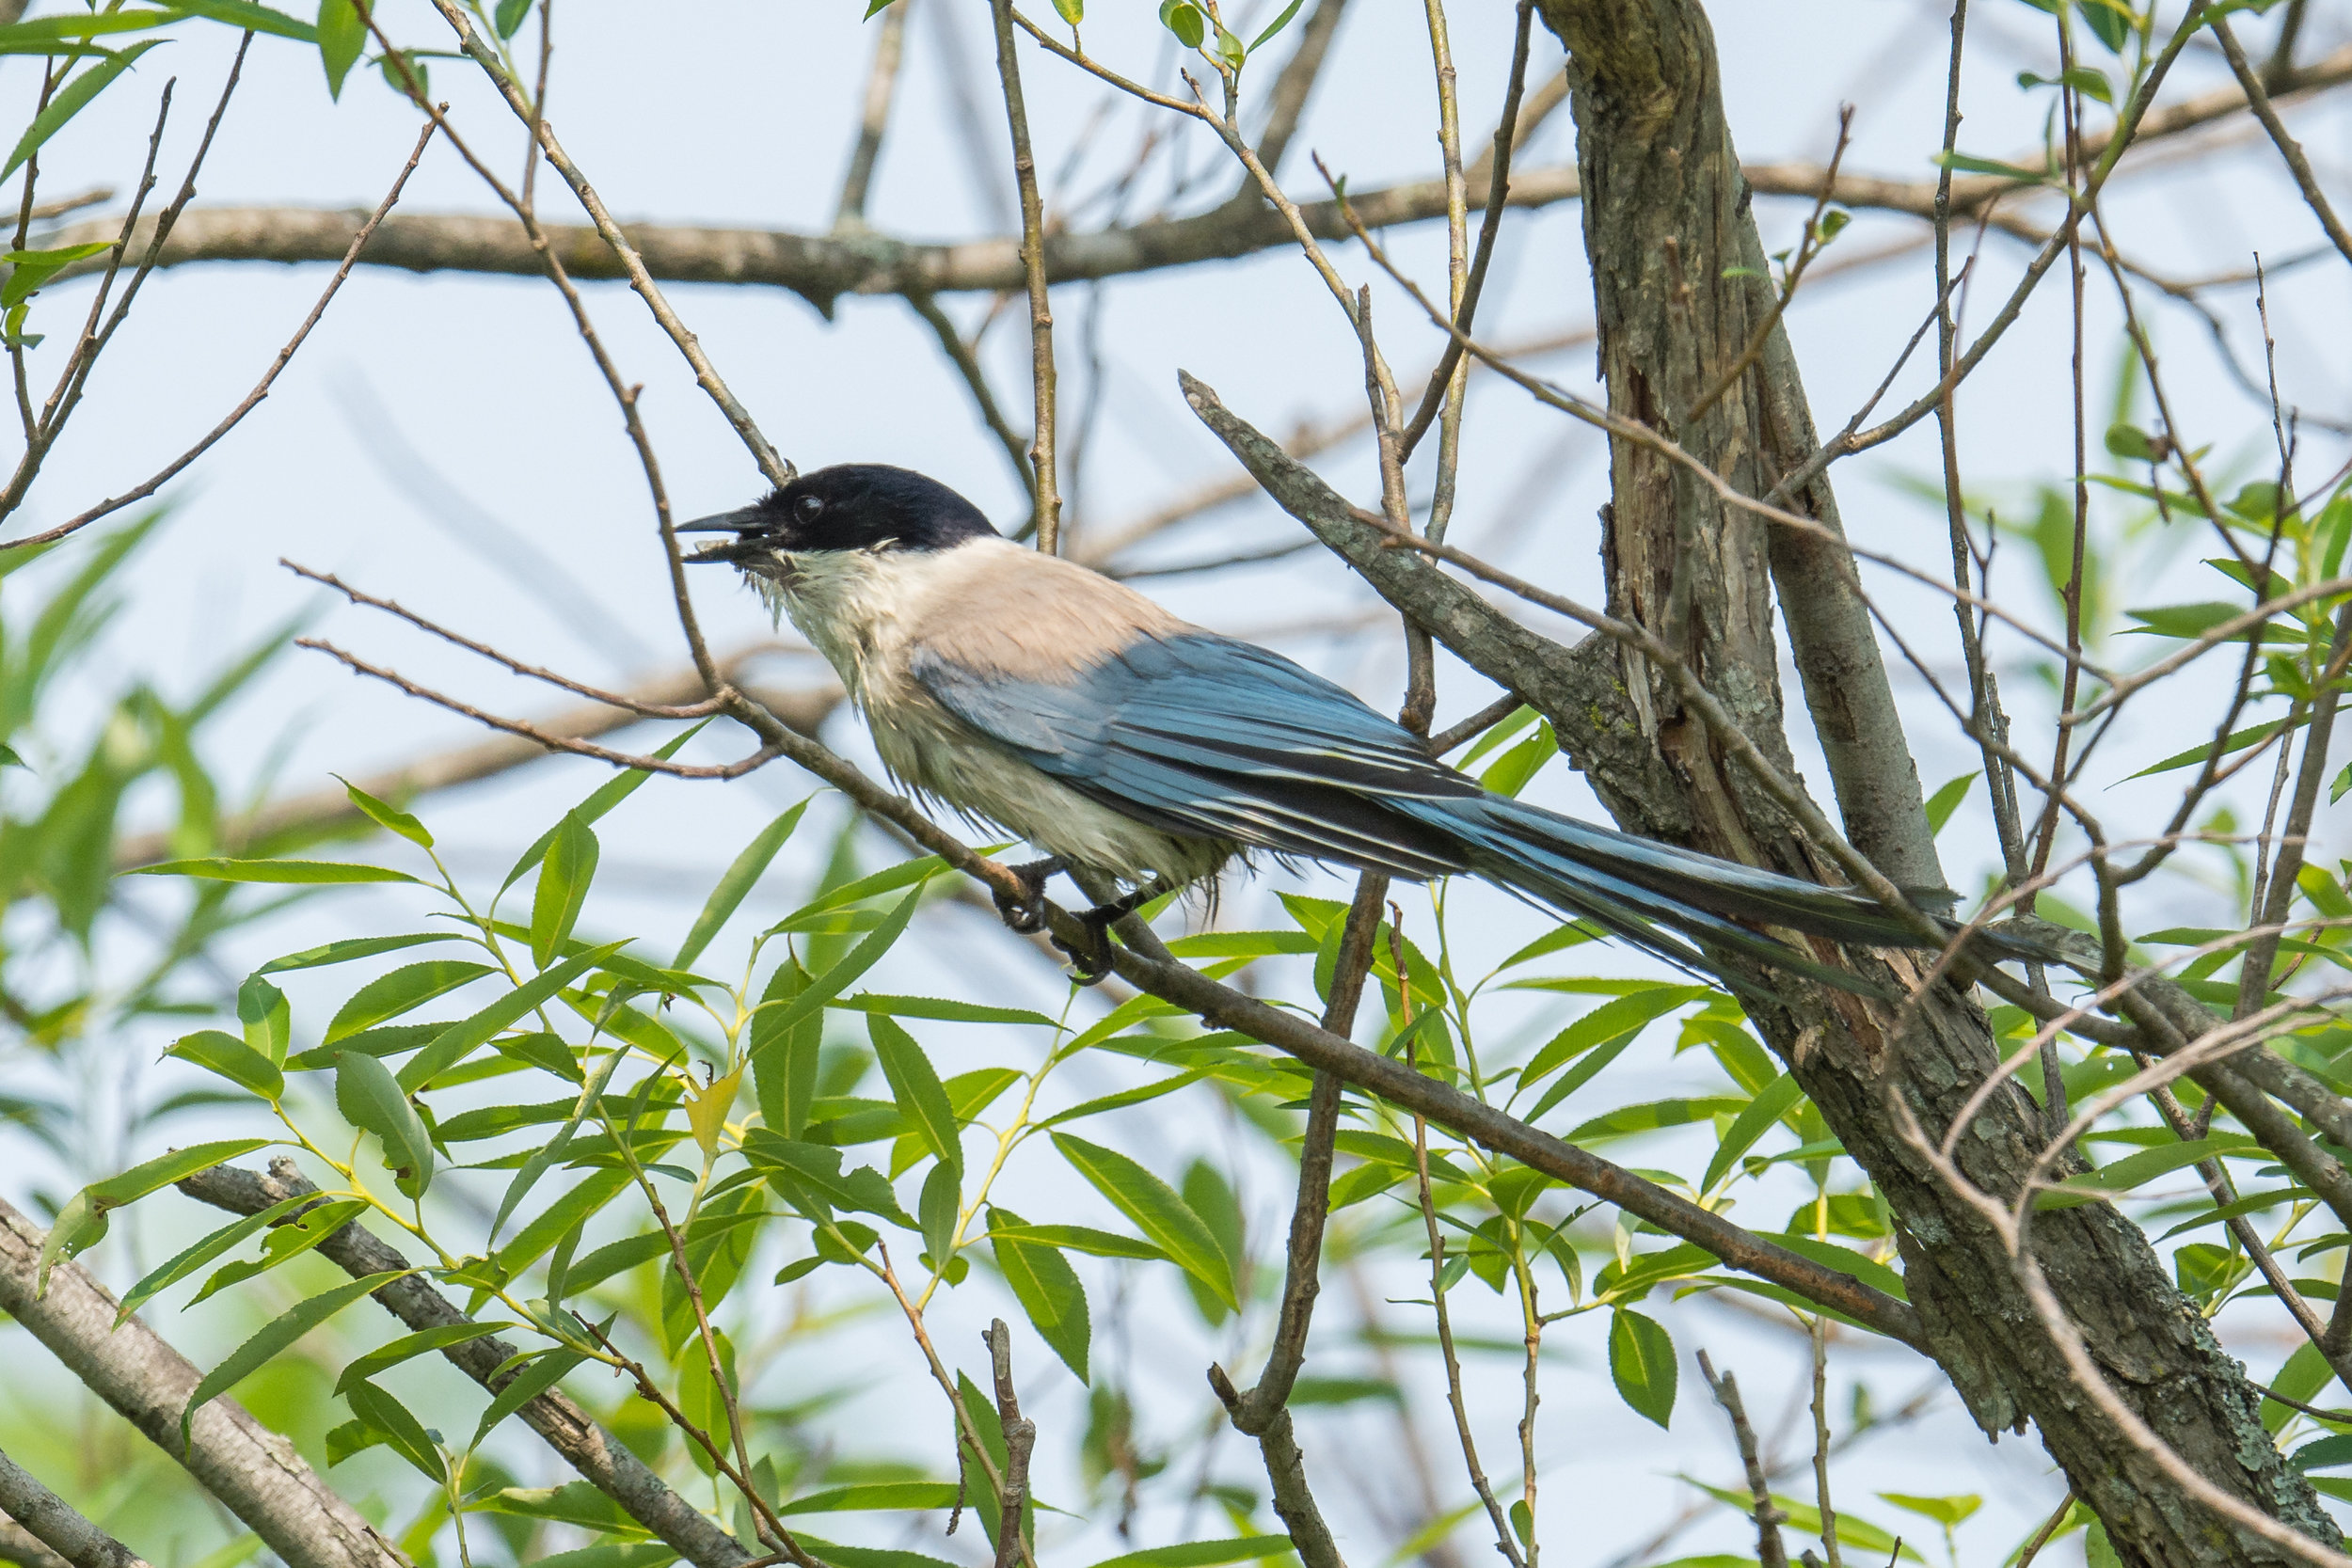 Azure-winged Magpie (Cyanopica cyanus), Zanadvorovka area, Primorskiy kraj, Russia  EQ: D7200, 500mm f/4.0   Taken: 6-18-2017 at 16:31   Settings: 750mm, 1/1250s, f/6.3, ISO320, 1/3EV         Conditions: Foggy